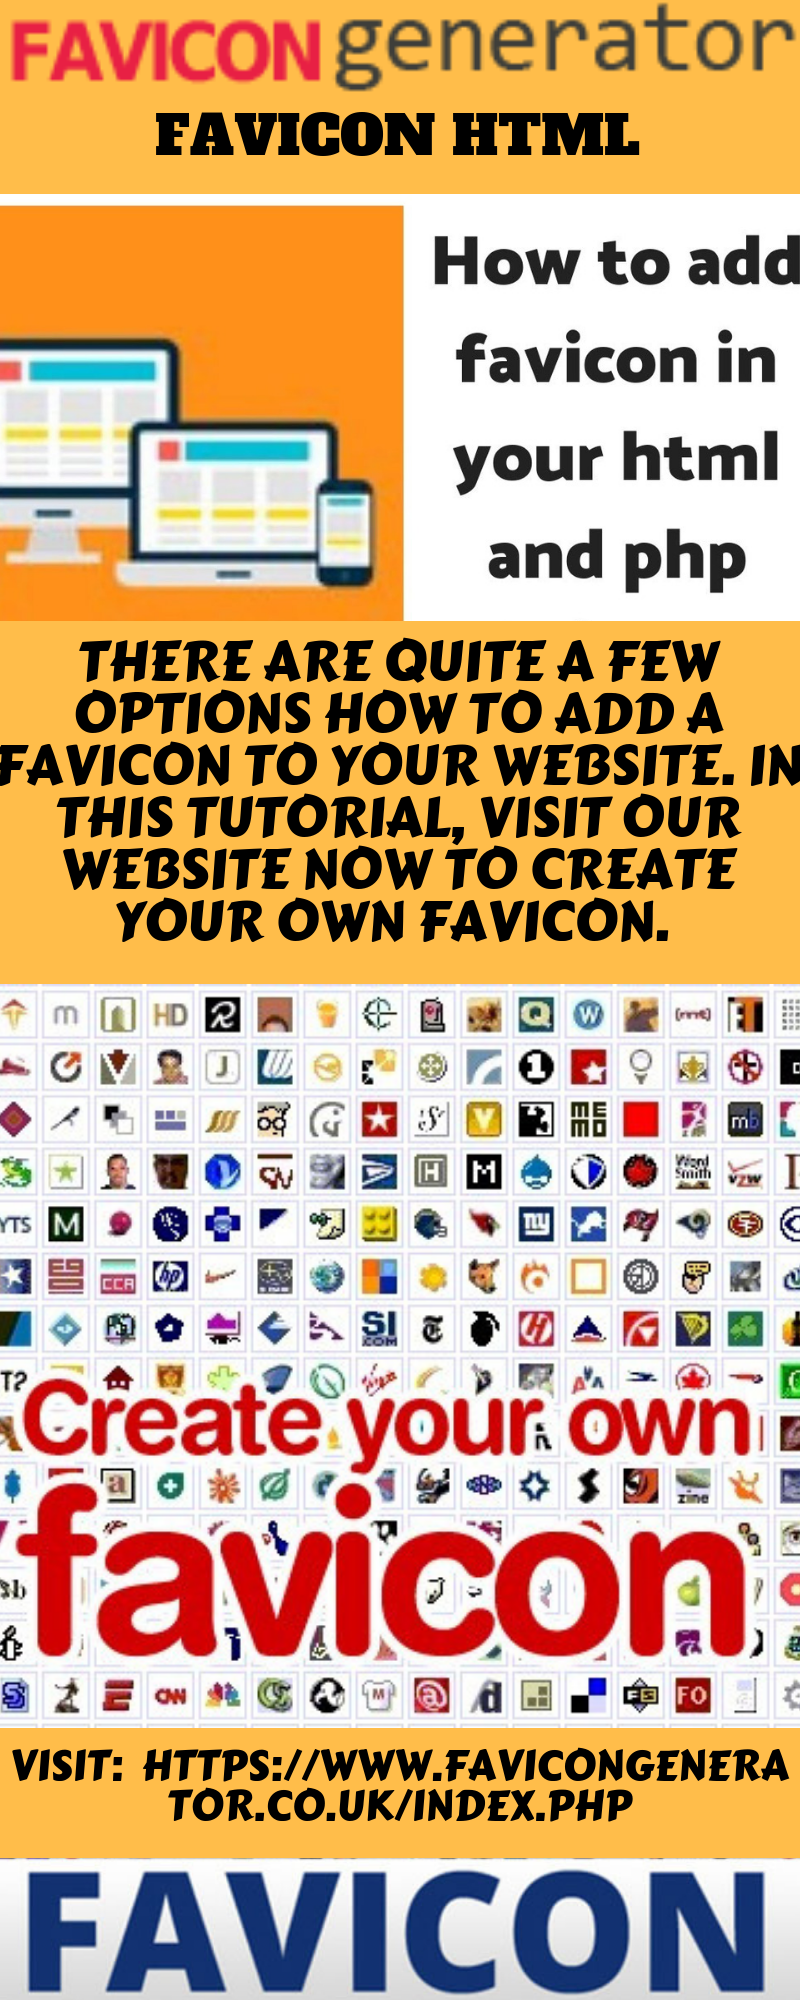 Favicon Html There Are Quite A Few Options How To Add A Favicon To Your Website In This Tutorial Visit Our Website Now Generation Browser Icon Shortcut Icon